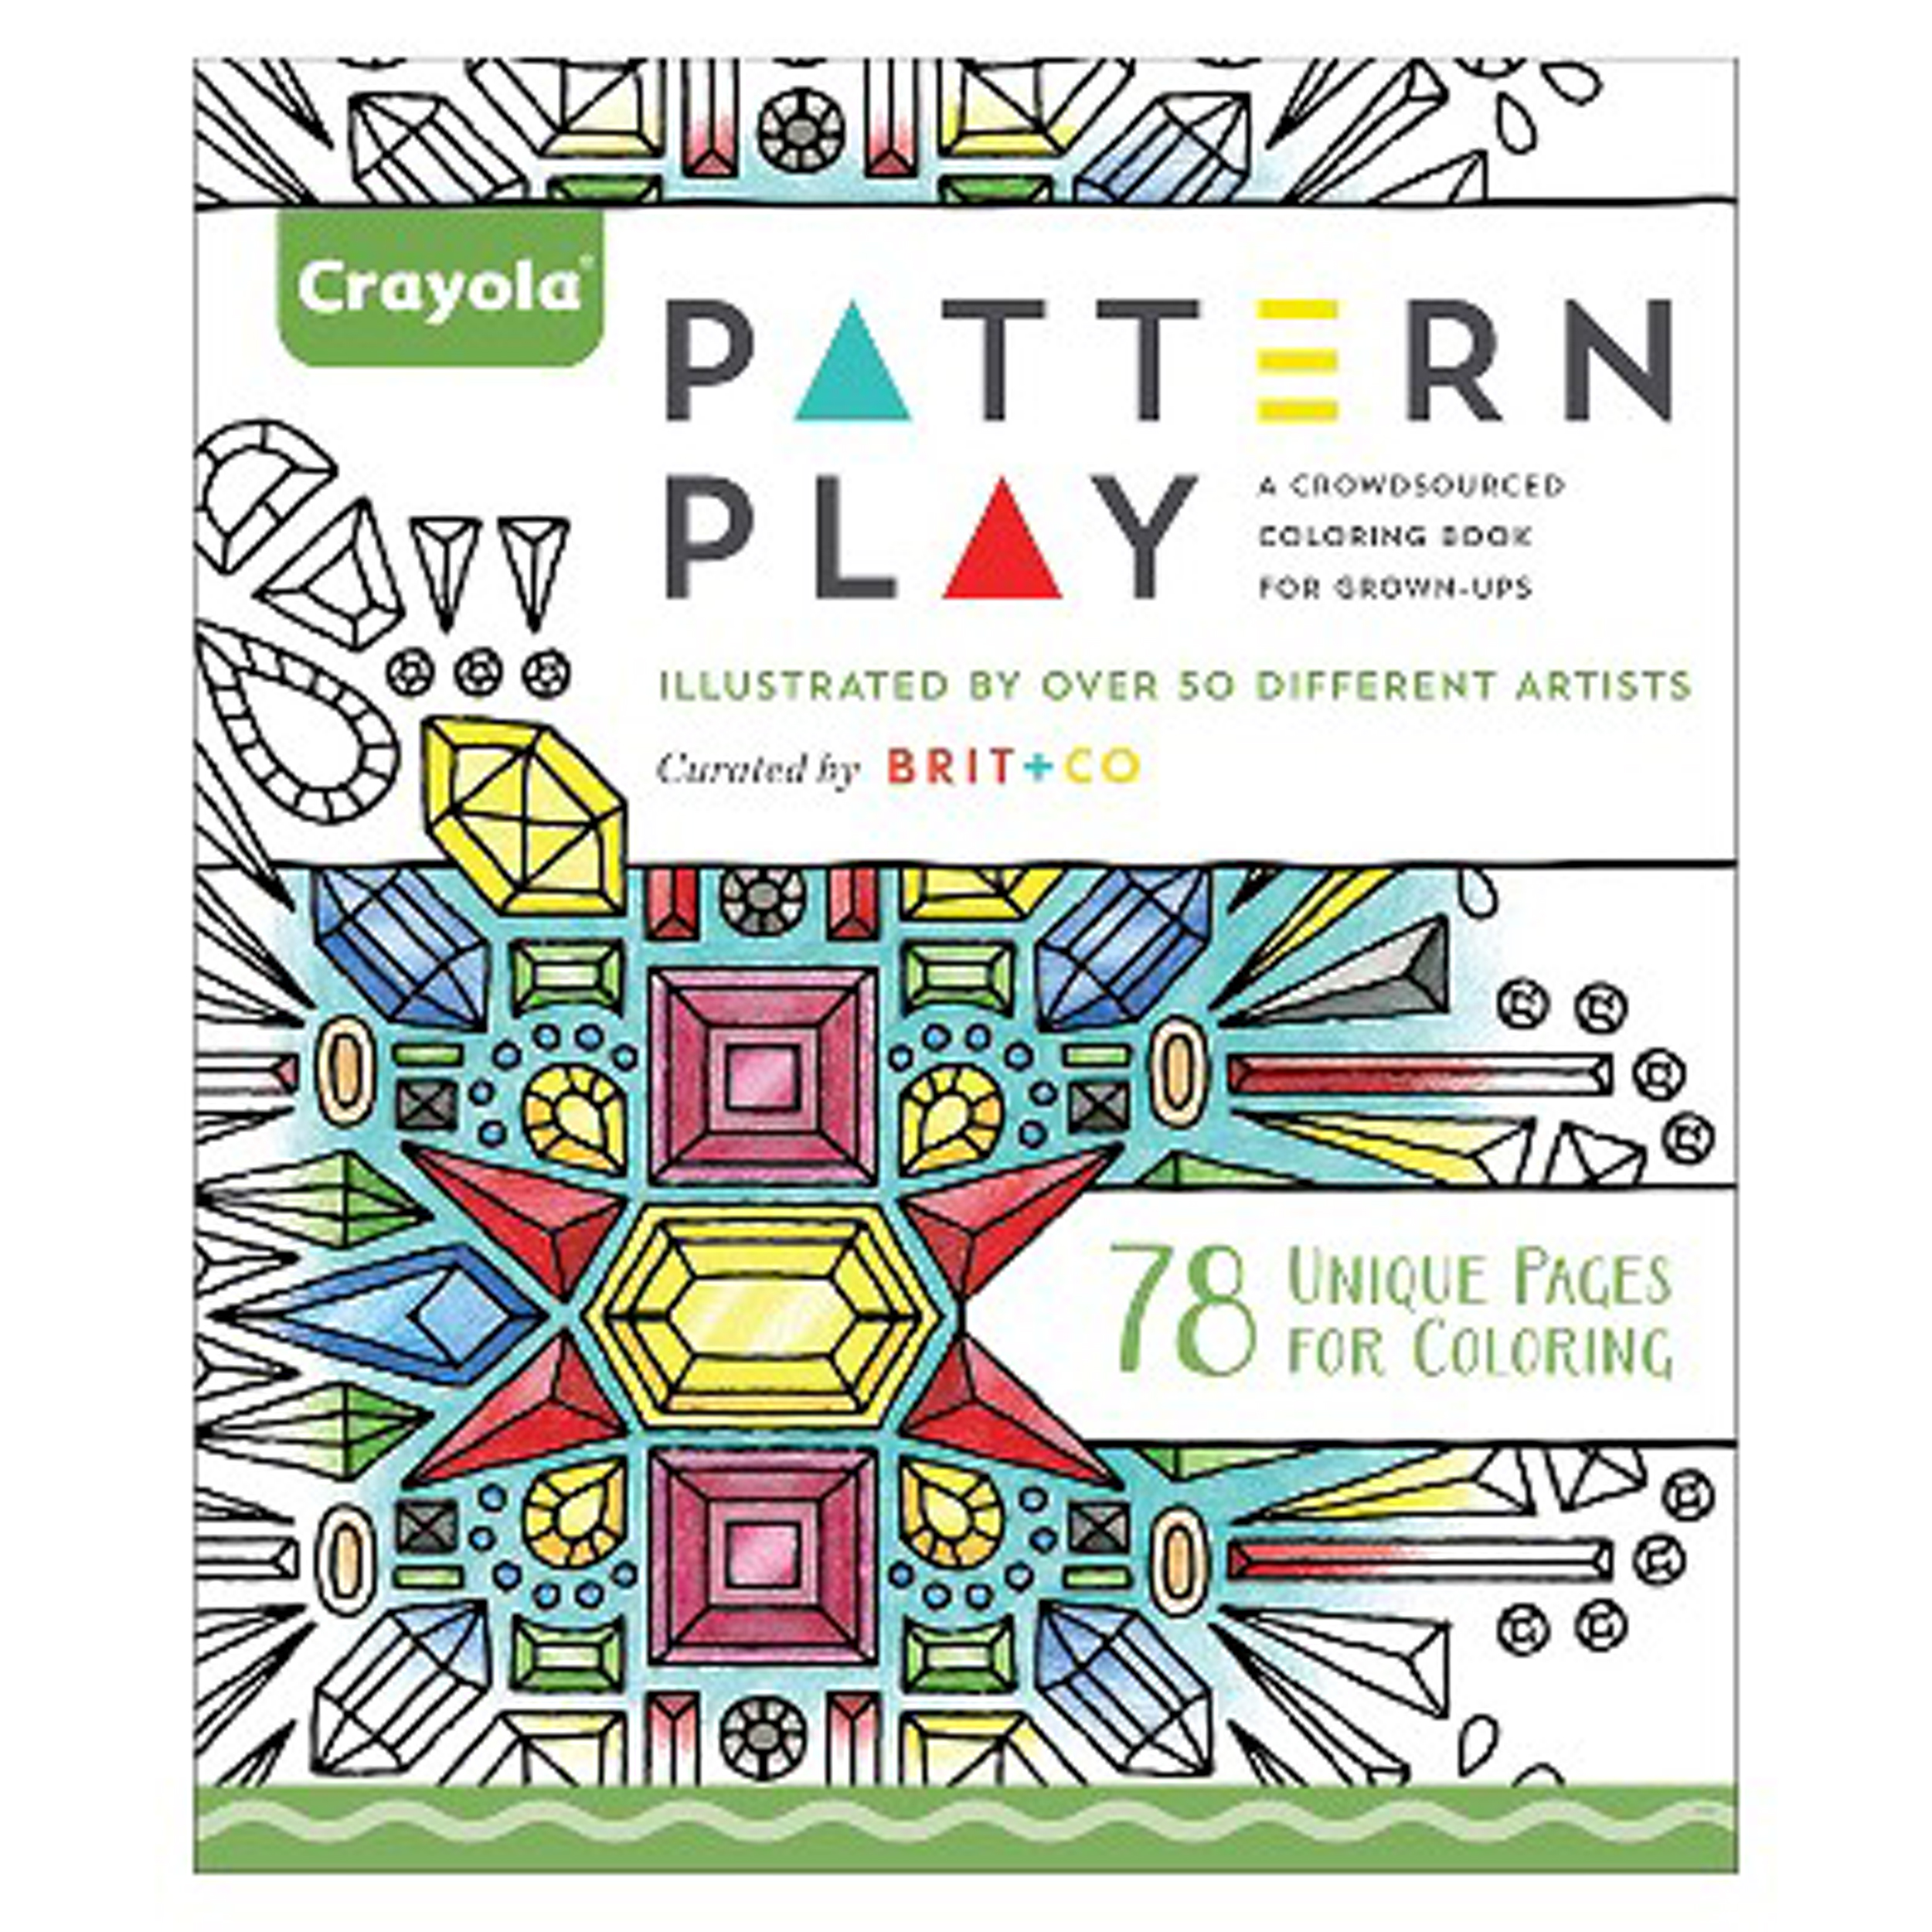 Grown Up Coloring Books Target